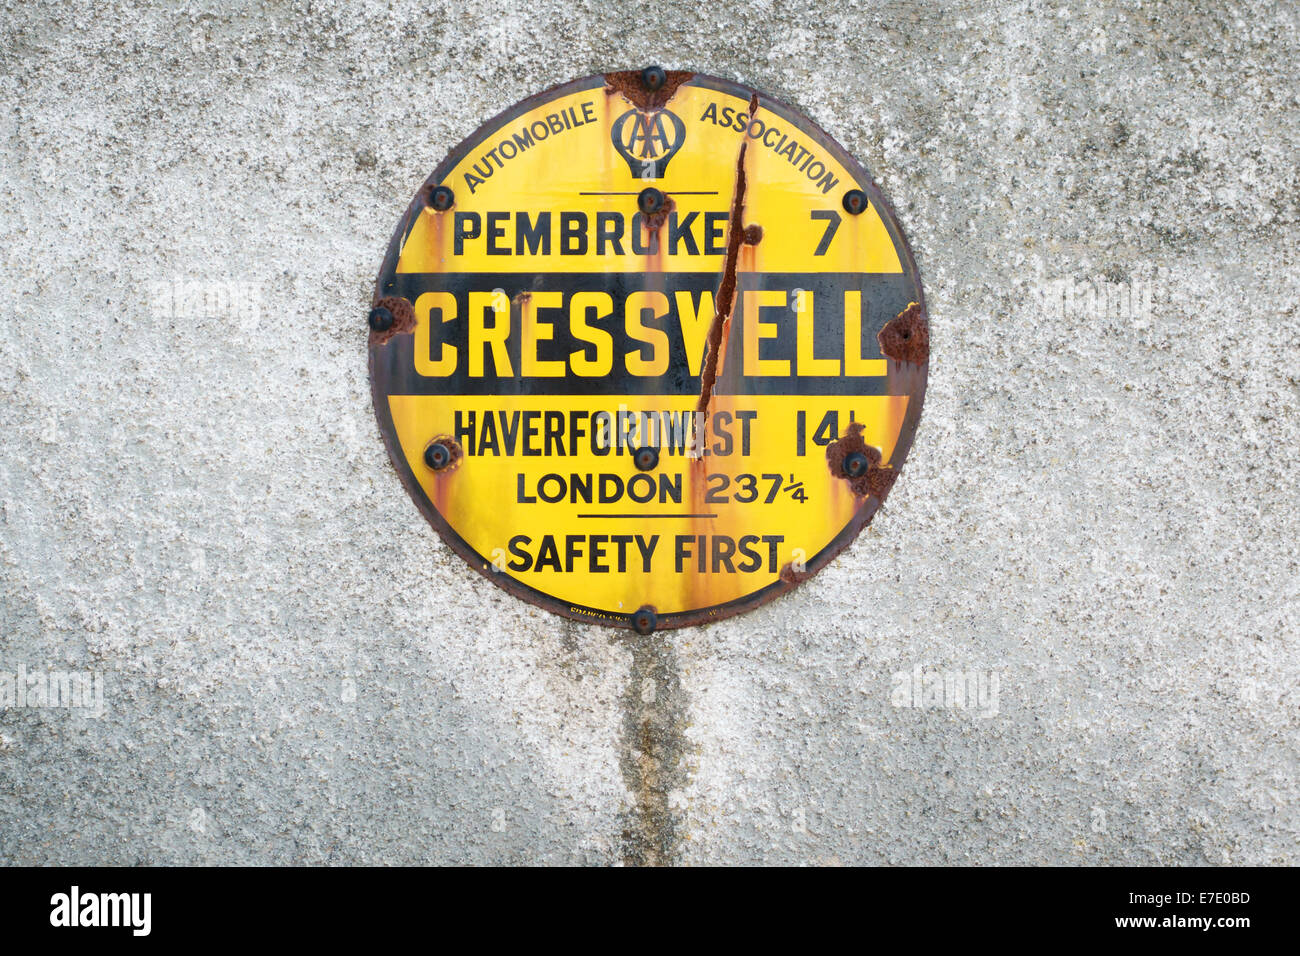 An old AA (Automobile Association) yellow sign at Cresswell Quay, Pembrokeshire, Wales, UK. - Stock Image